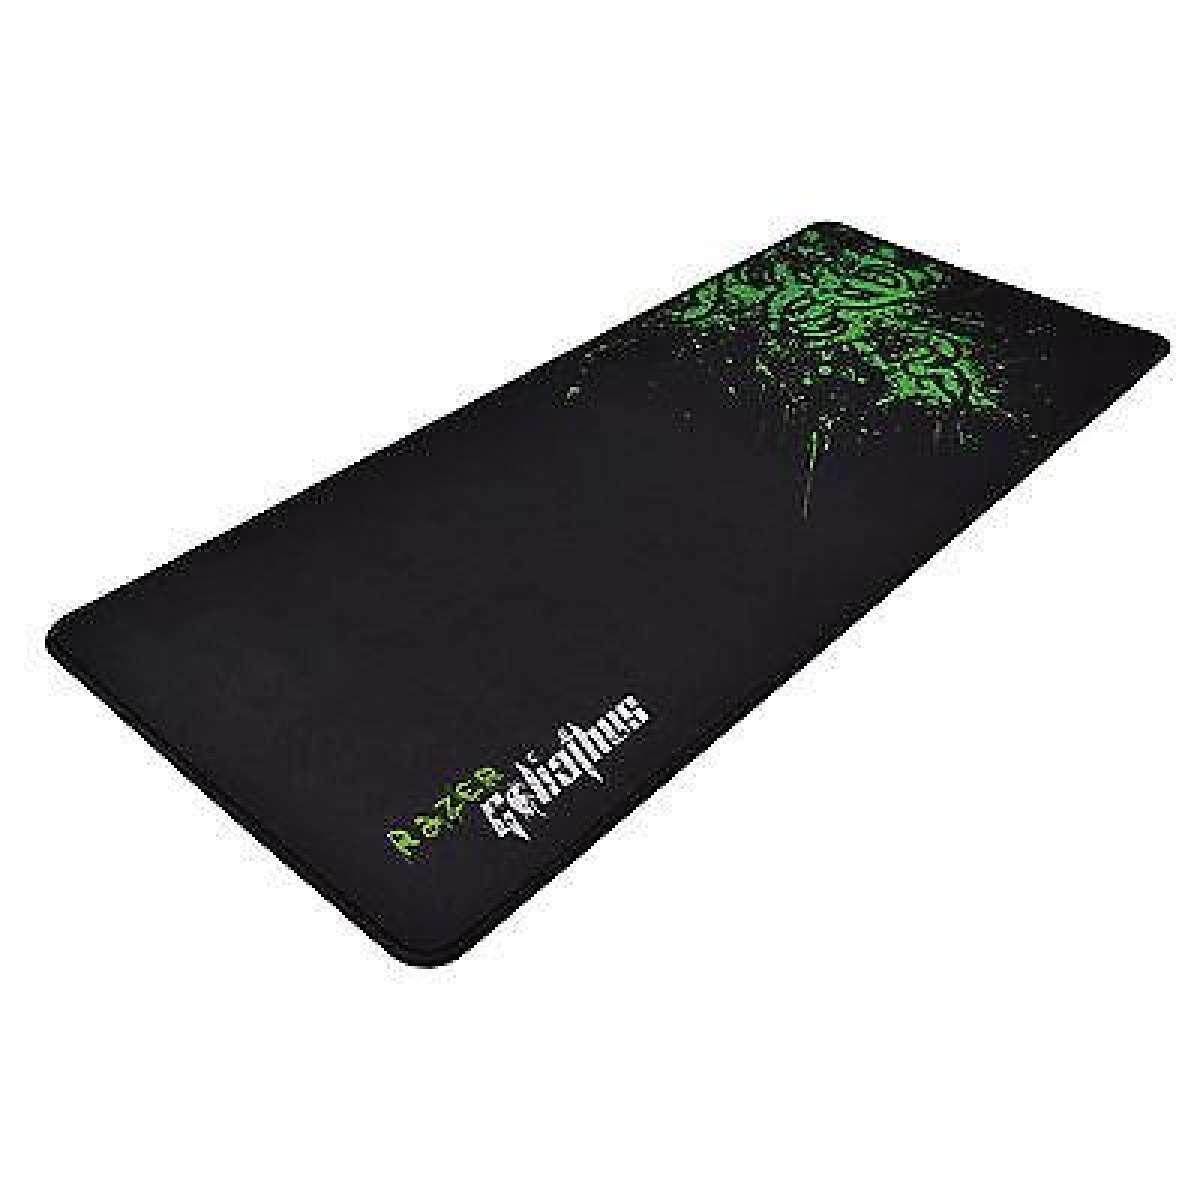 Razer Goliathus Control Speed Mouse Pad Mat large 800mm*300mm*2mm/210mm*250mm*2mm Gaming Edition Malaysia